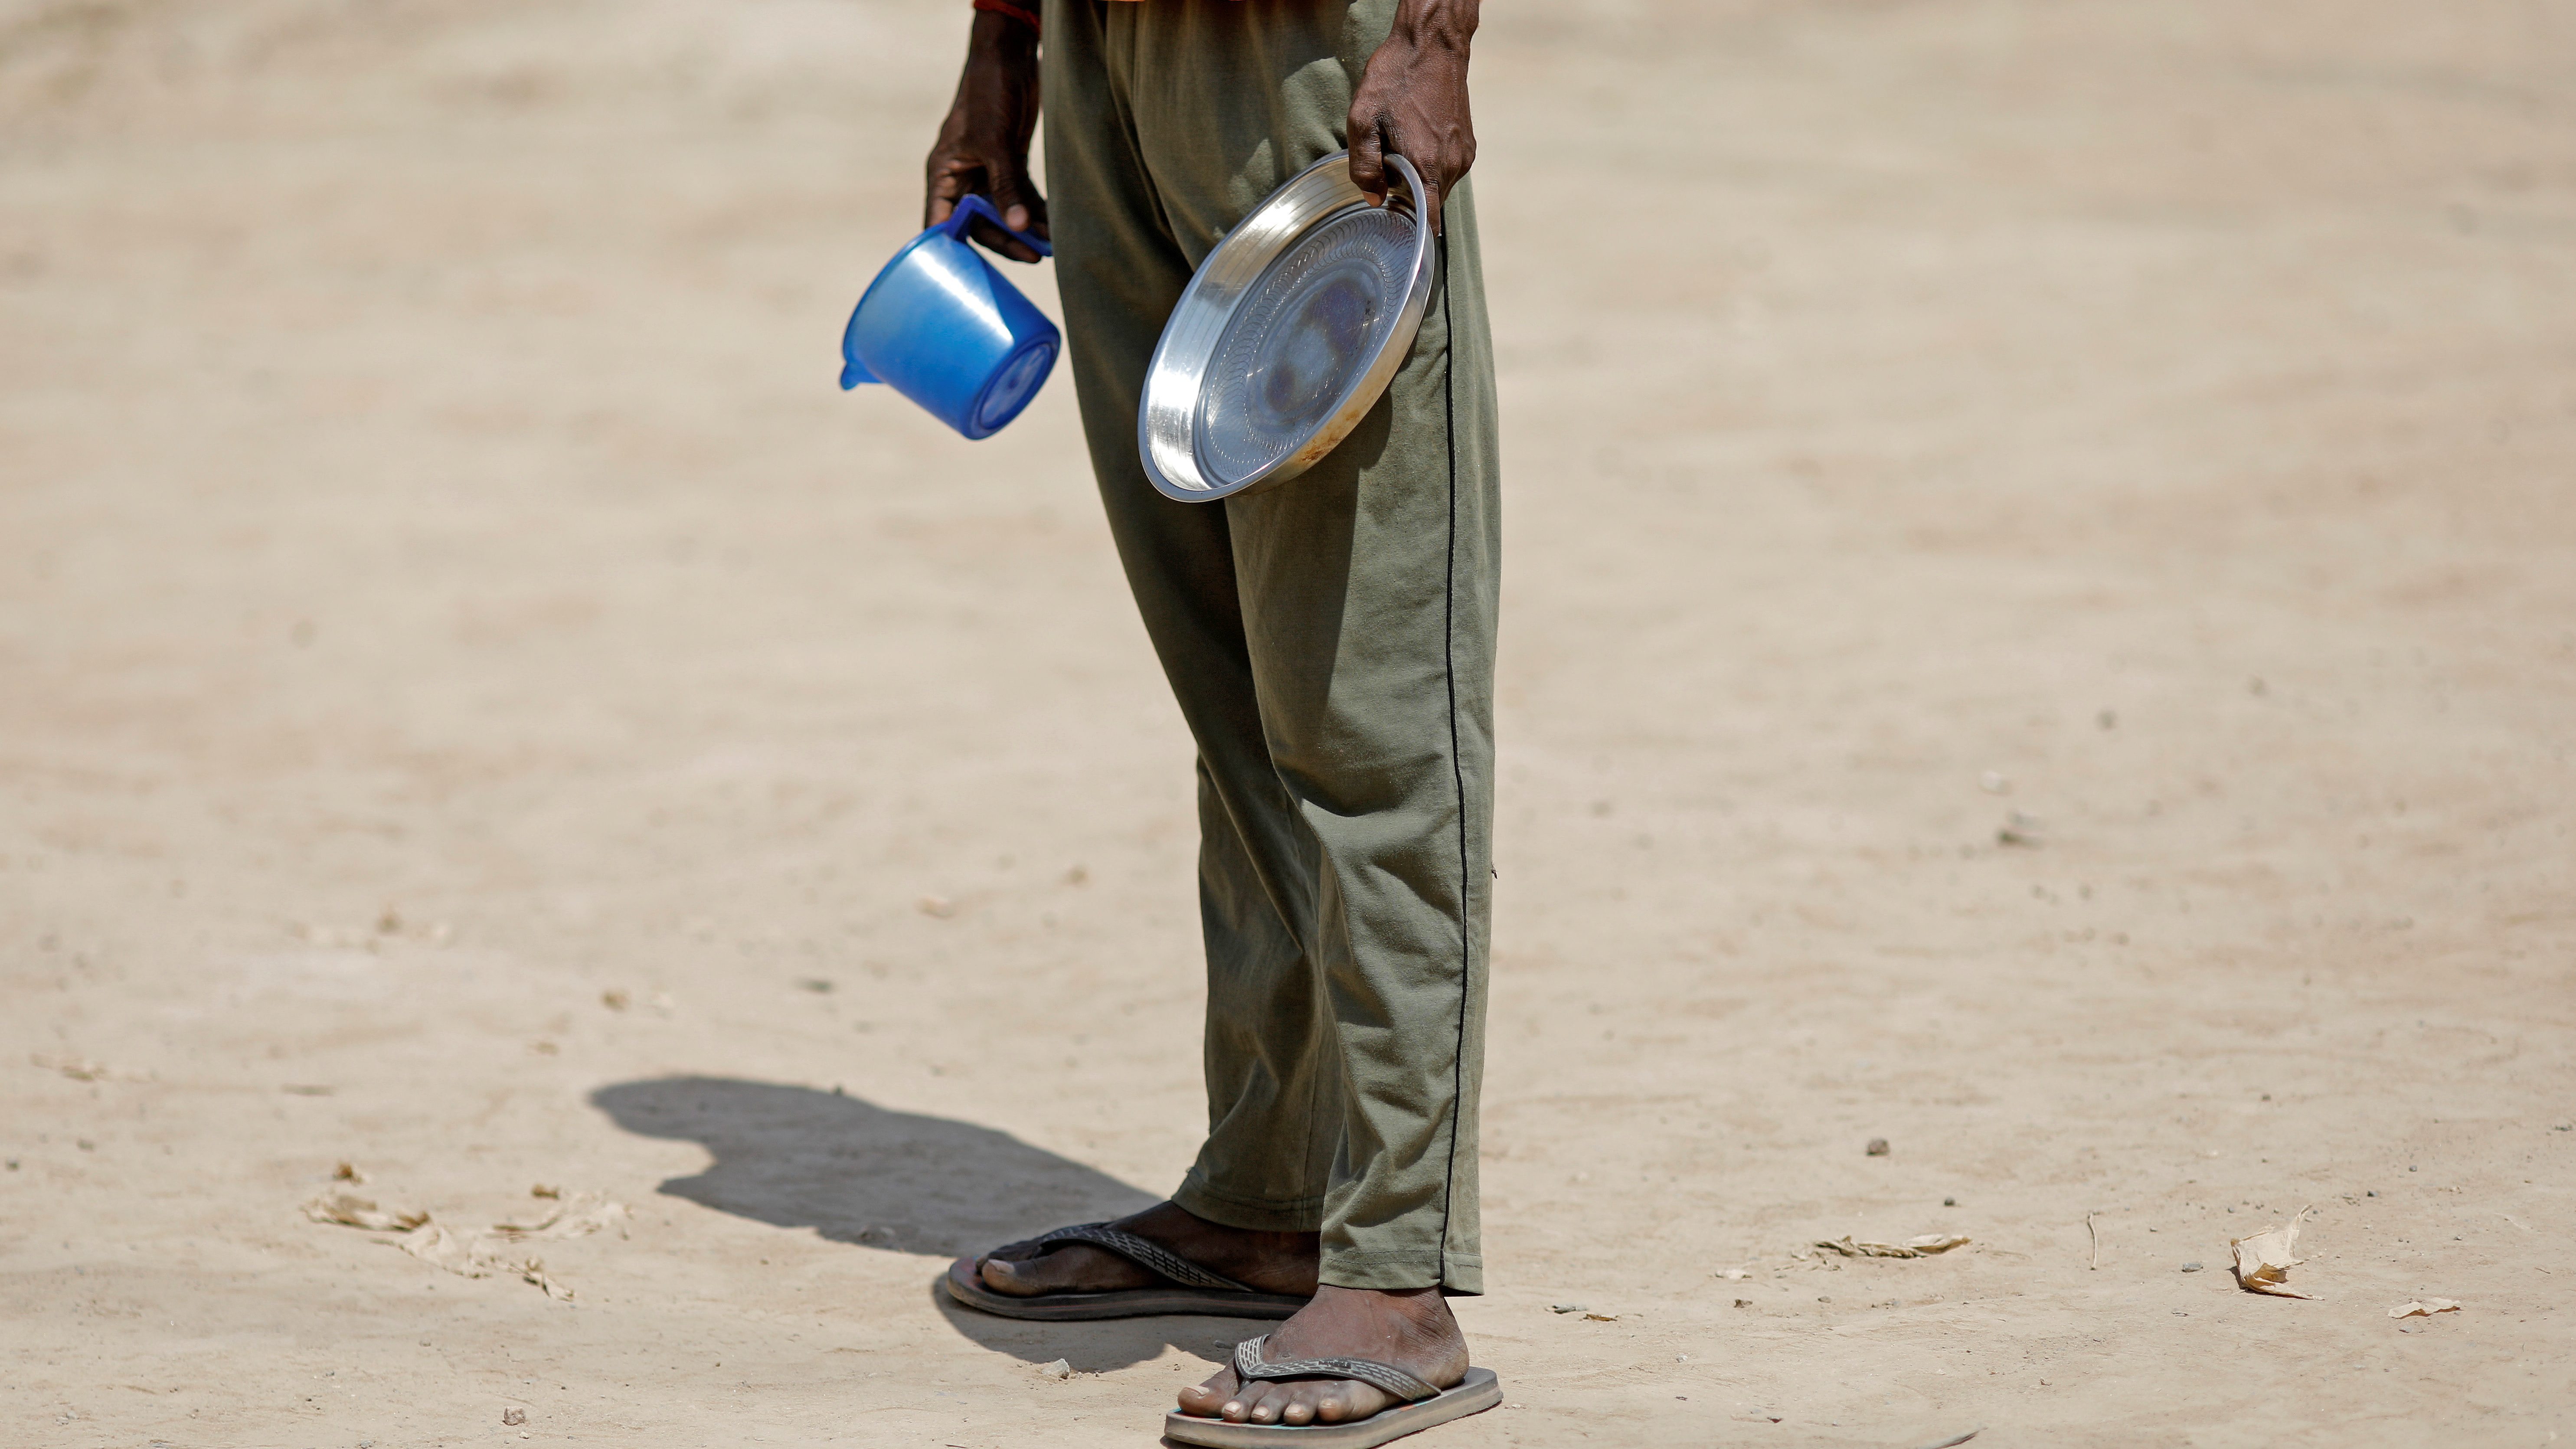 A daily wage labourer waits for free food during a Covid-19 lockdown in Delhi